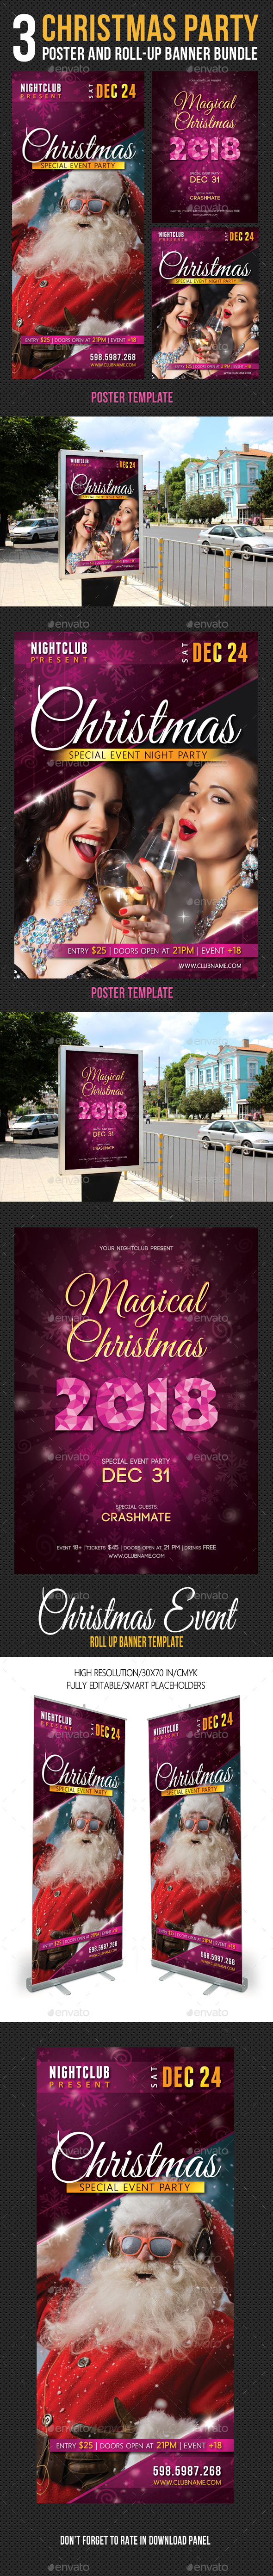 3 in 1 Christmas Party Poster Banner Bundle - Signage Print Templates